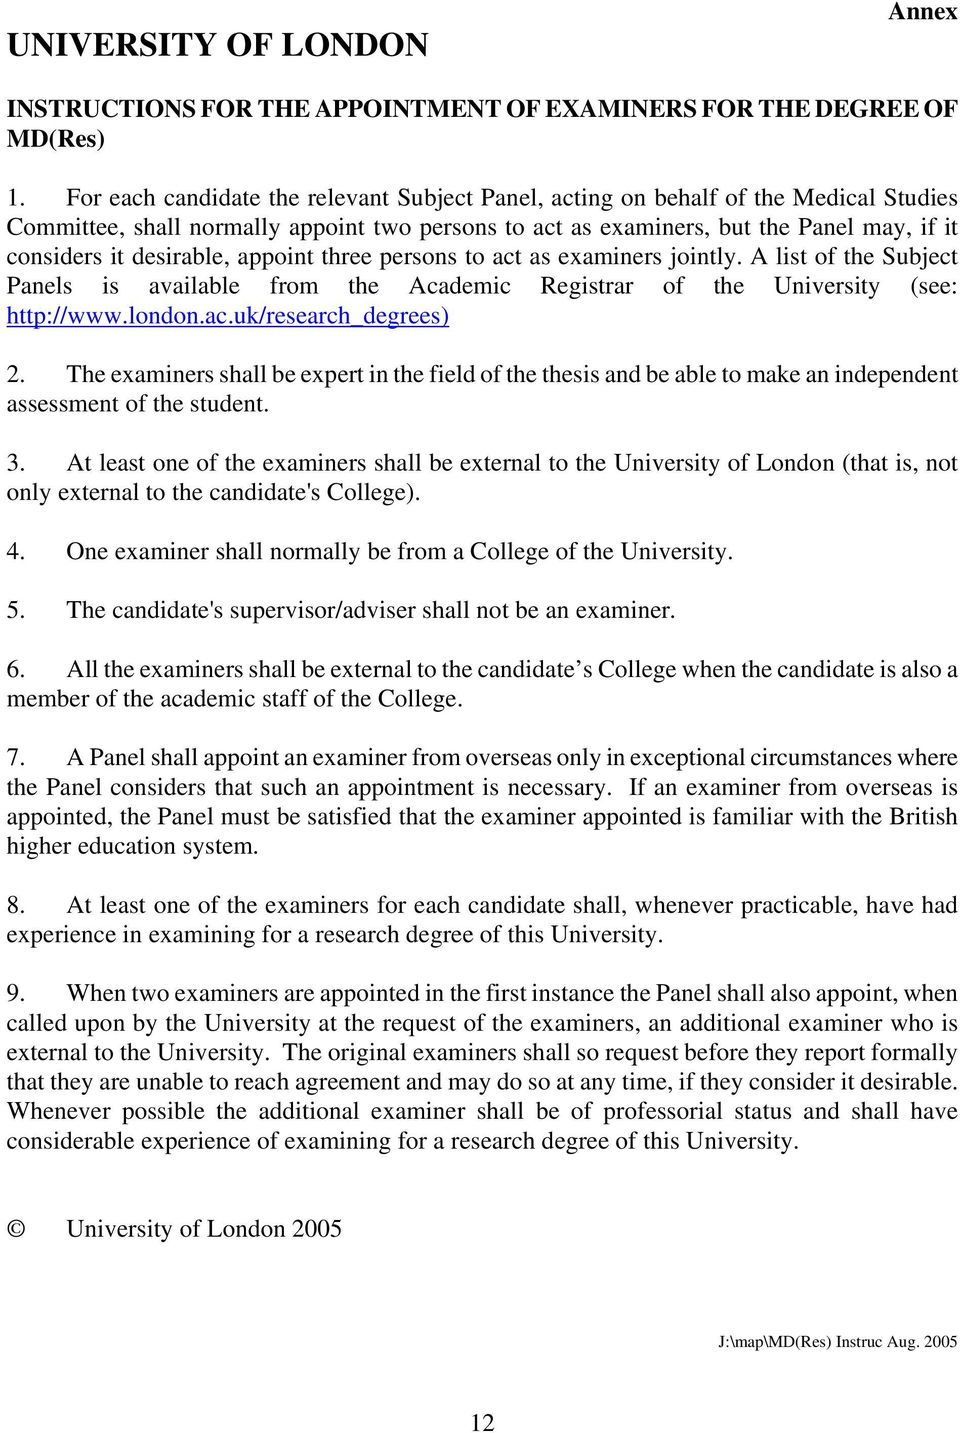 desirable, appoint three persons to act as examiners jointly. A list of the Subject Panels is available from the Academic Registrar of the University (see: http://www.london.ac.uk/research_degrees) 2.